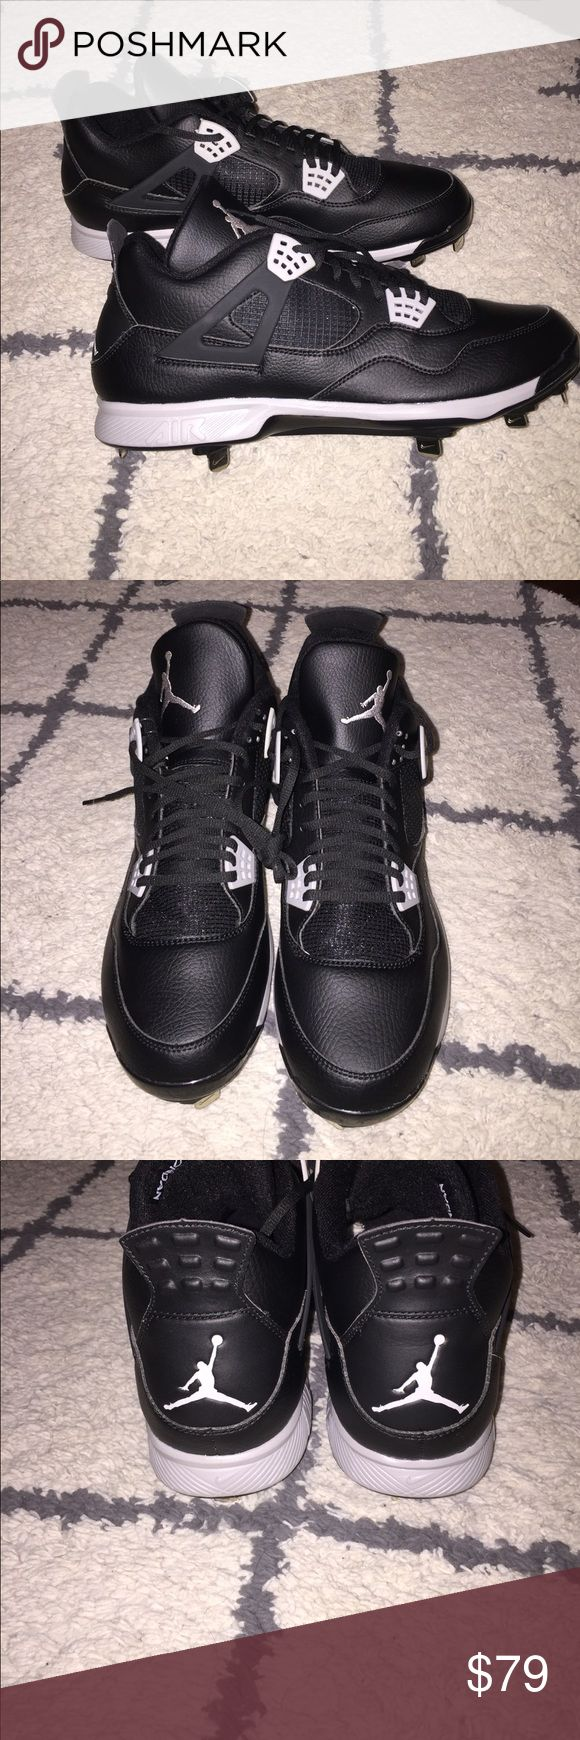 Brand New Air Jordan Retro 4 Baseball Cleats These are perfect for the diamond!!!! Brand new Jordan Retro 4 Oreo Cleats!!! I do not have the box, but they are brand new as you can see in pictures. They are on Eastbay right now for $105+. Make an offer!! Jordan Shoes Athletic Shoes